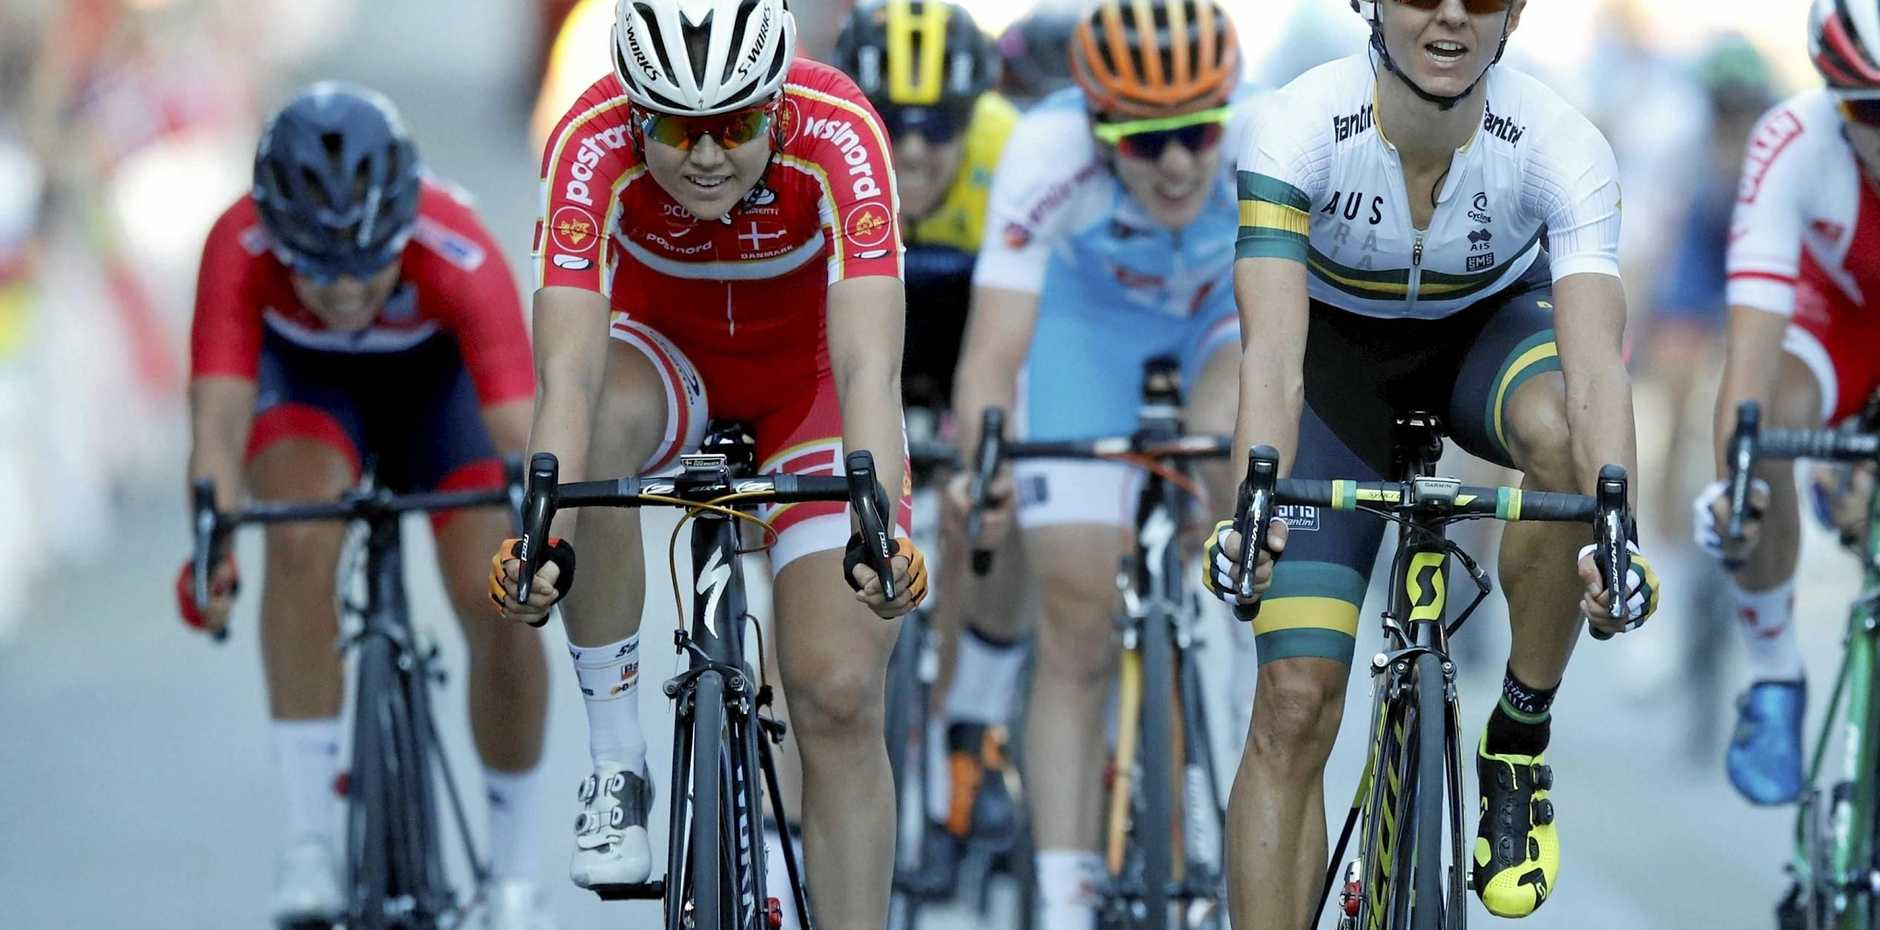 Katrin Garfoot (right) wins silver in women's wold championship road race in Norway.